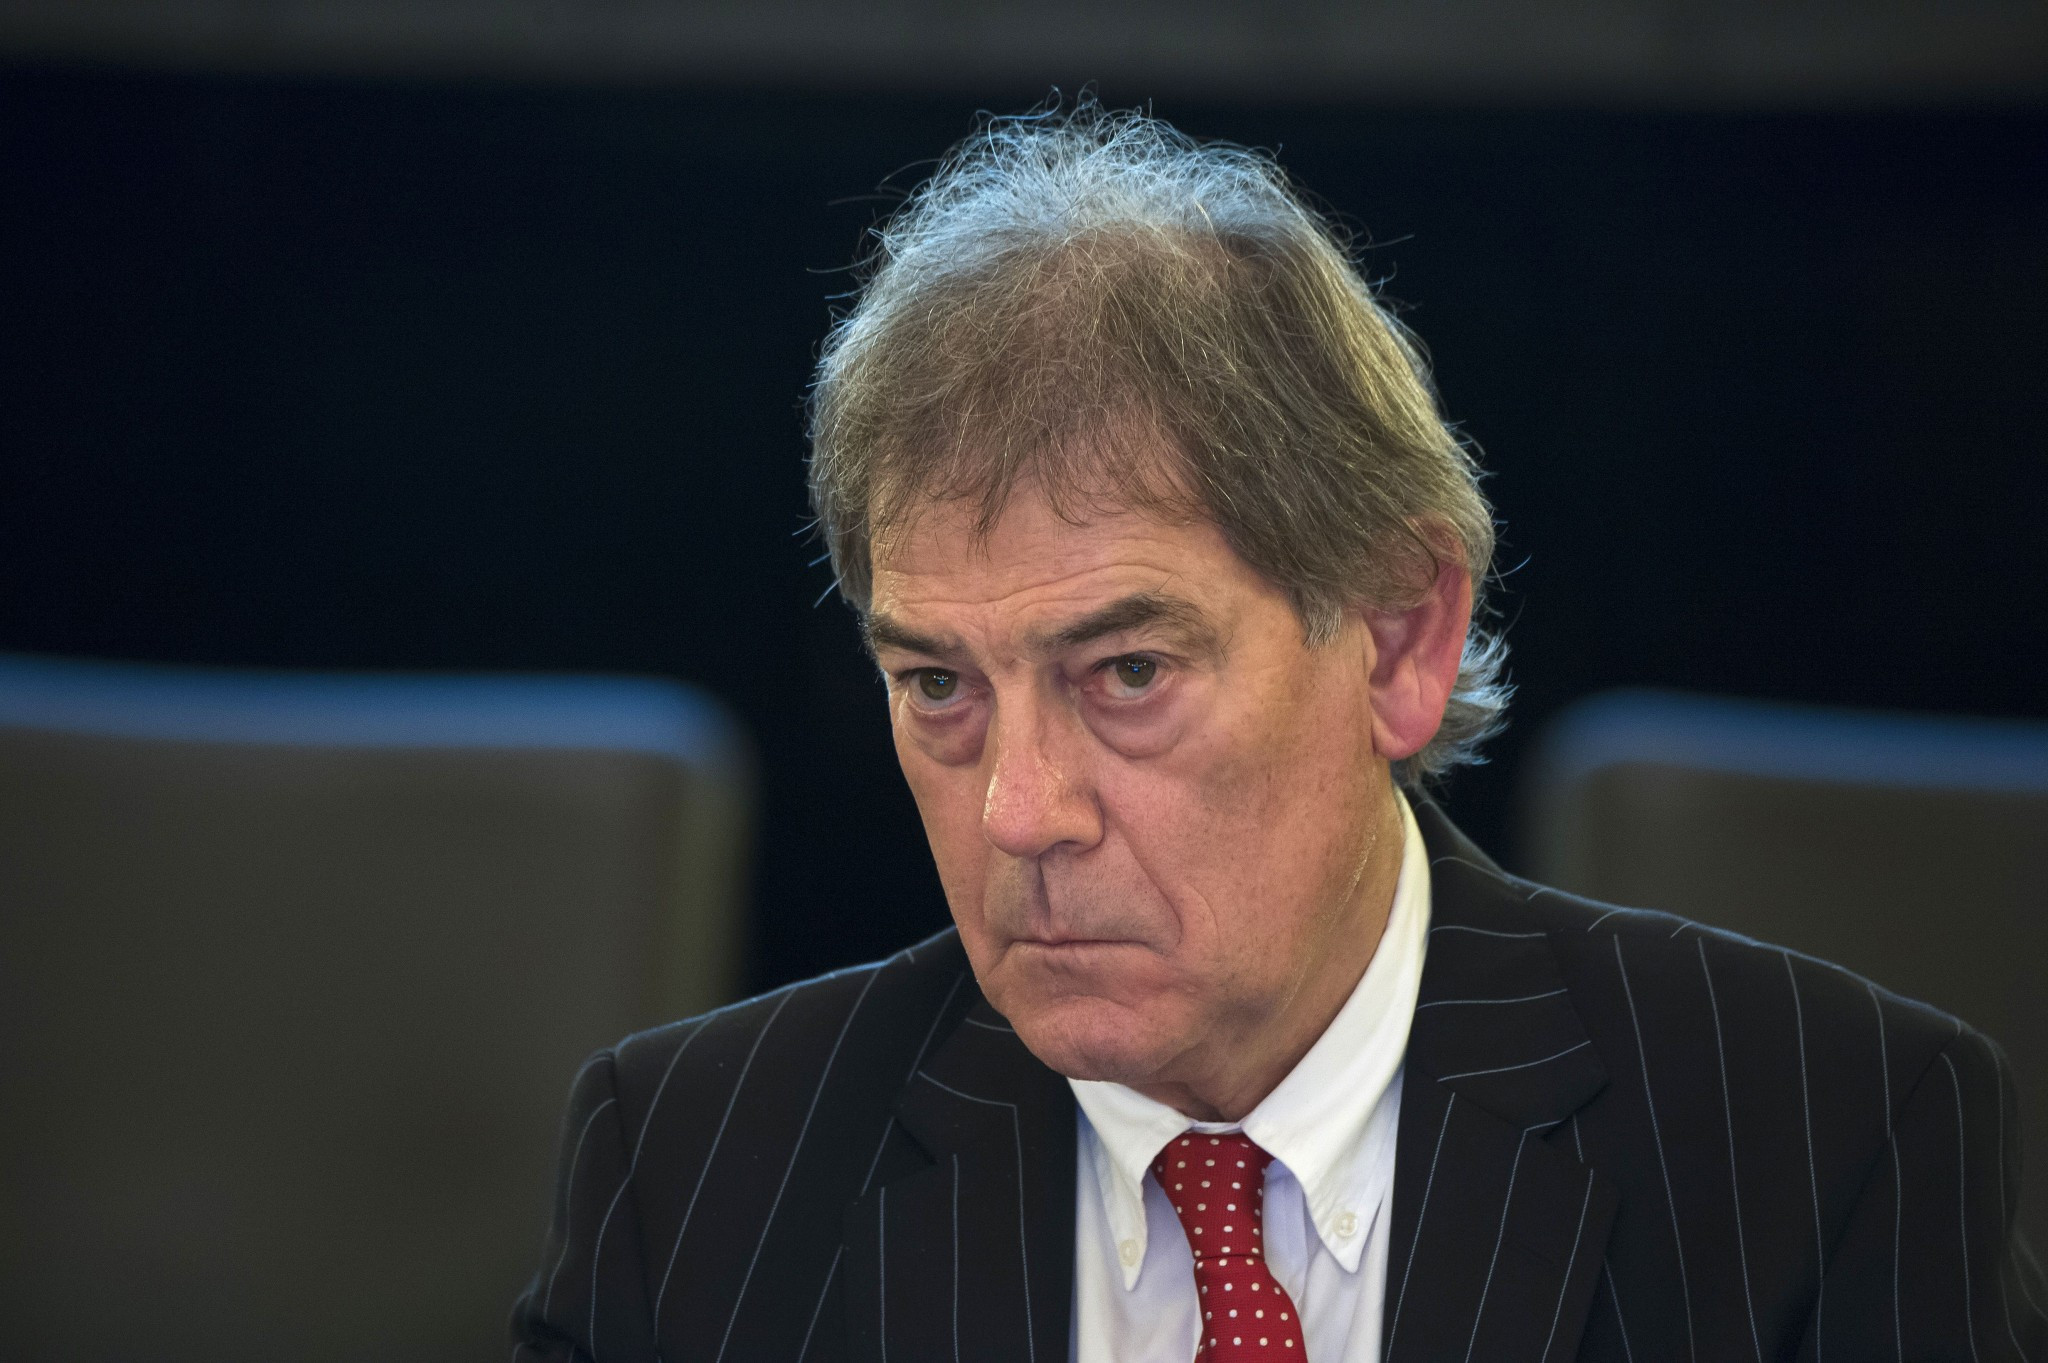 WADA director general David Howman will be among the participants in a British Select Committee hearing on blood doping in athletics tomorrow ©WADA